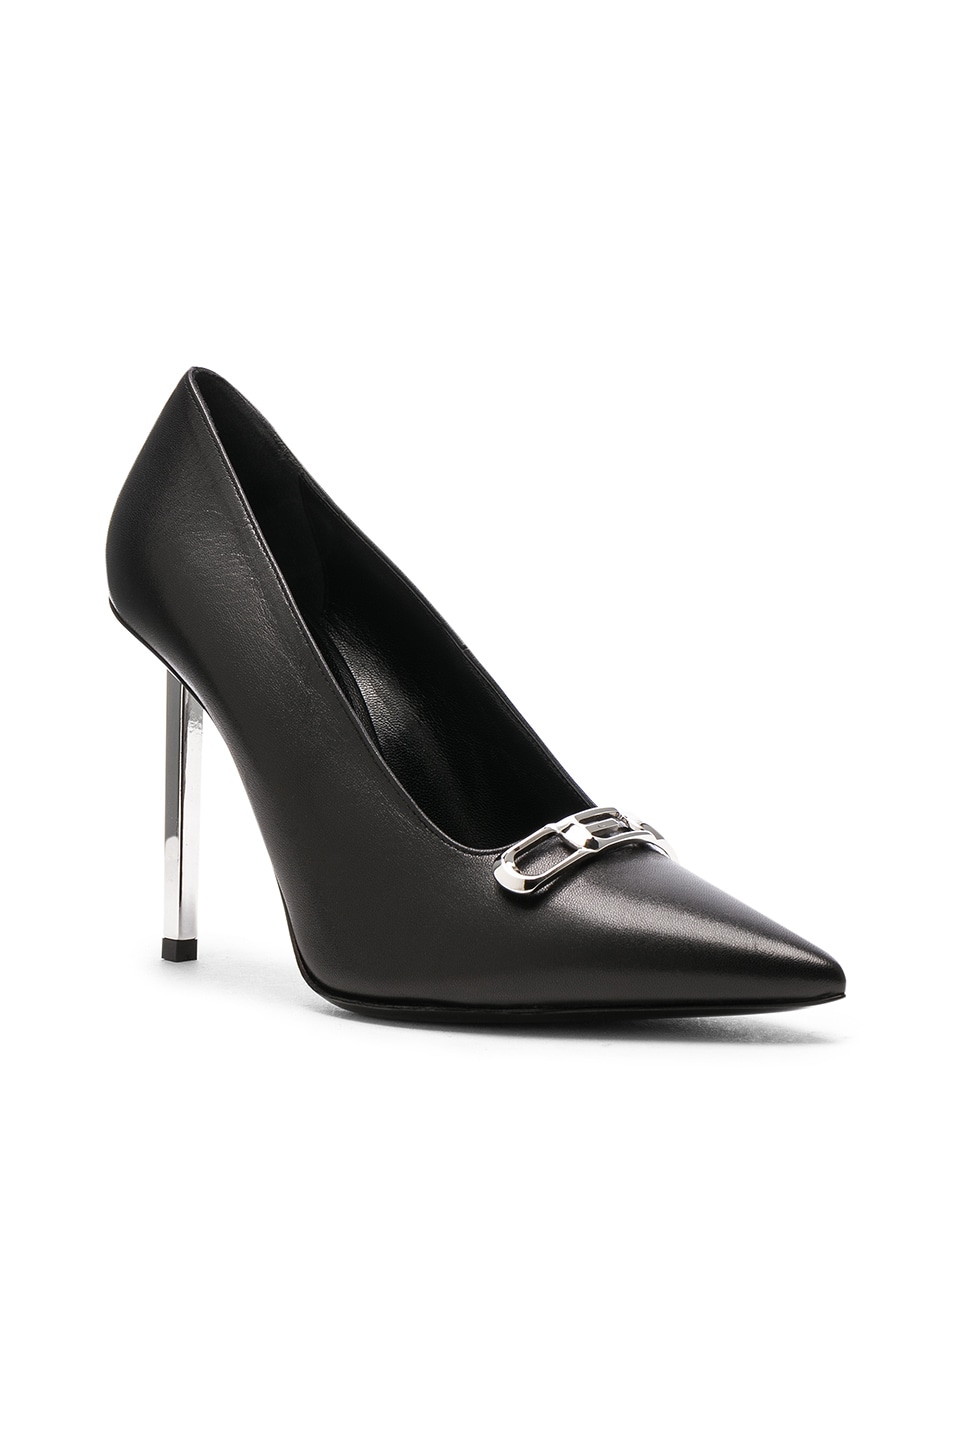 Image 2 of Alexander Wang CEO Pump in Black